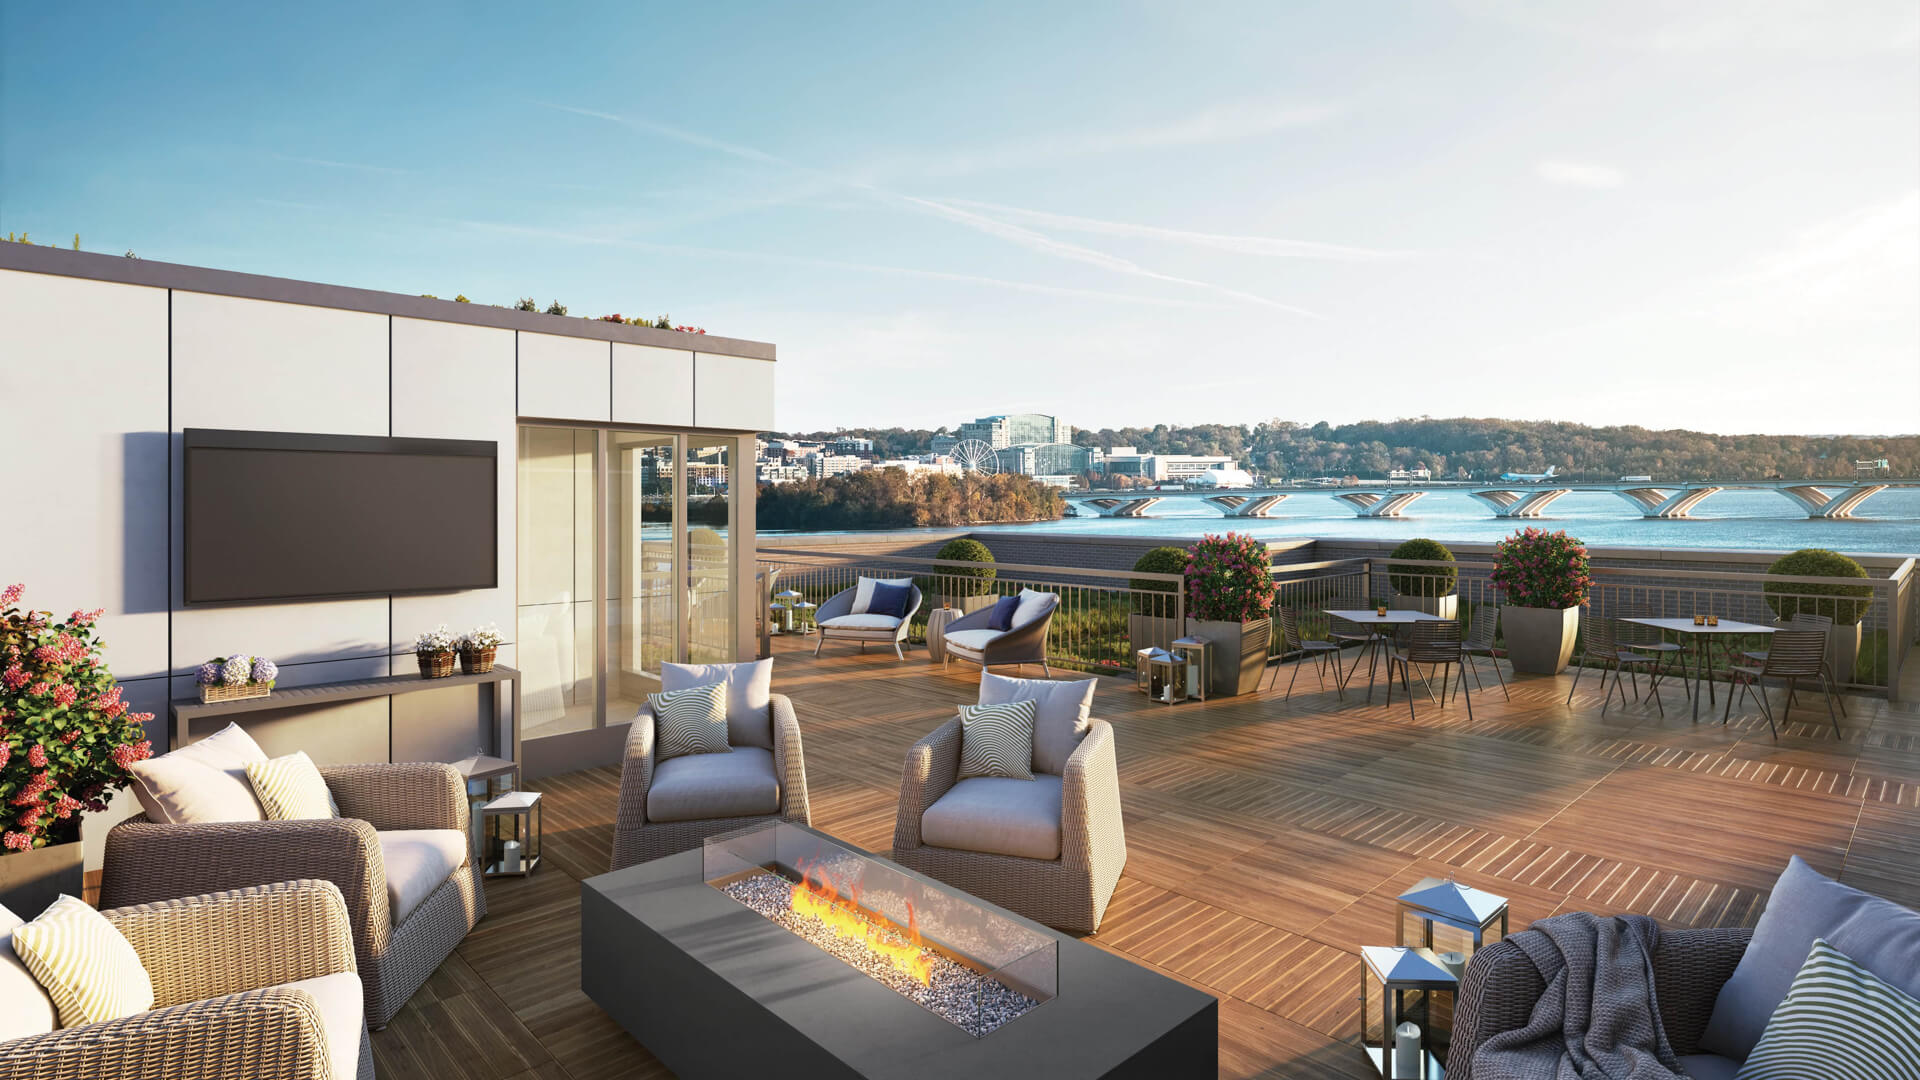 Future view of National Harbor and the river from the rooftop space at Venue